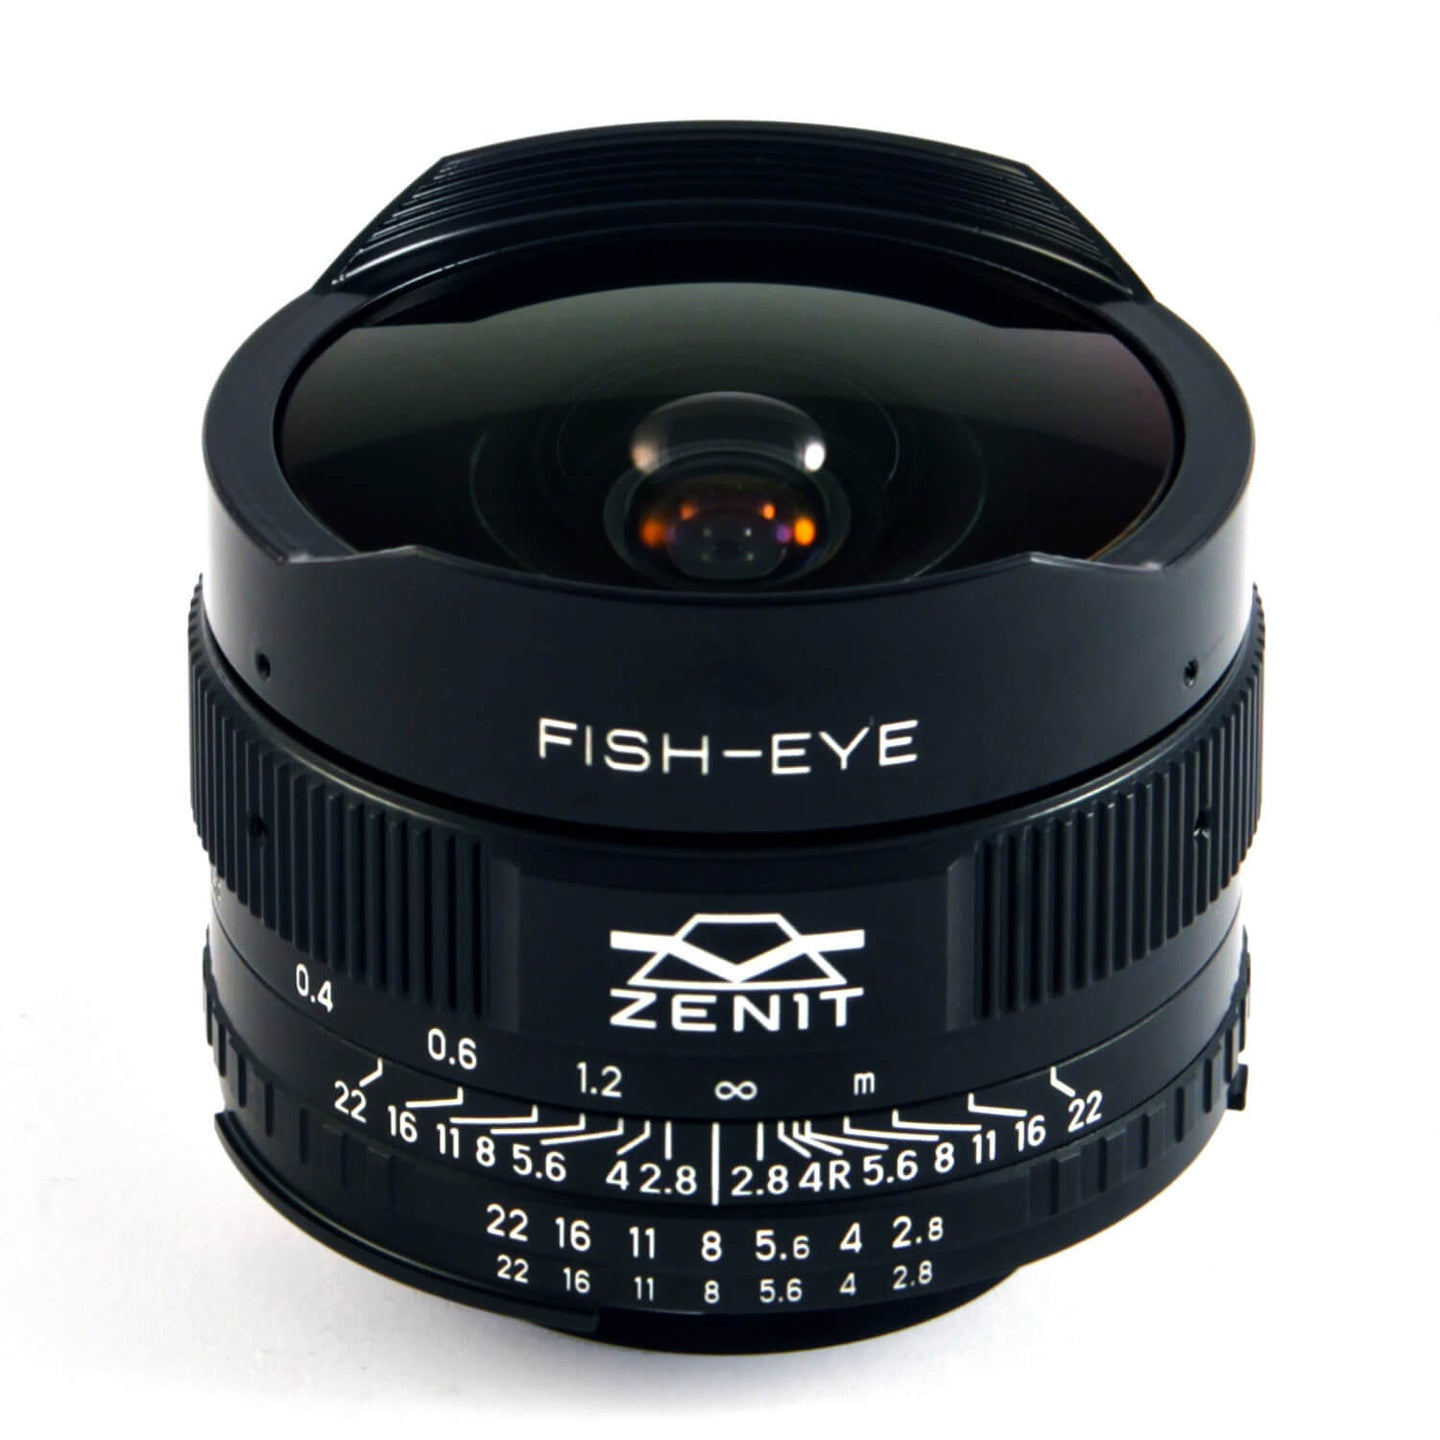 Zenitar 16mm f/2.8 Fish-Eye lens for Nikon